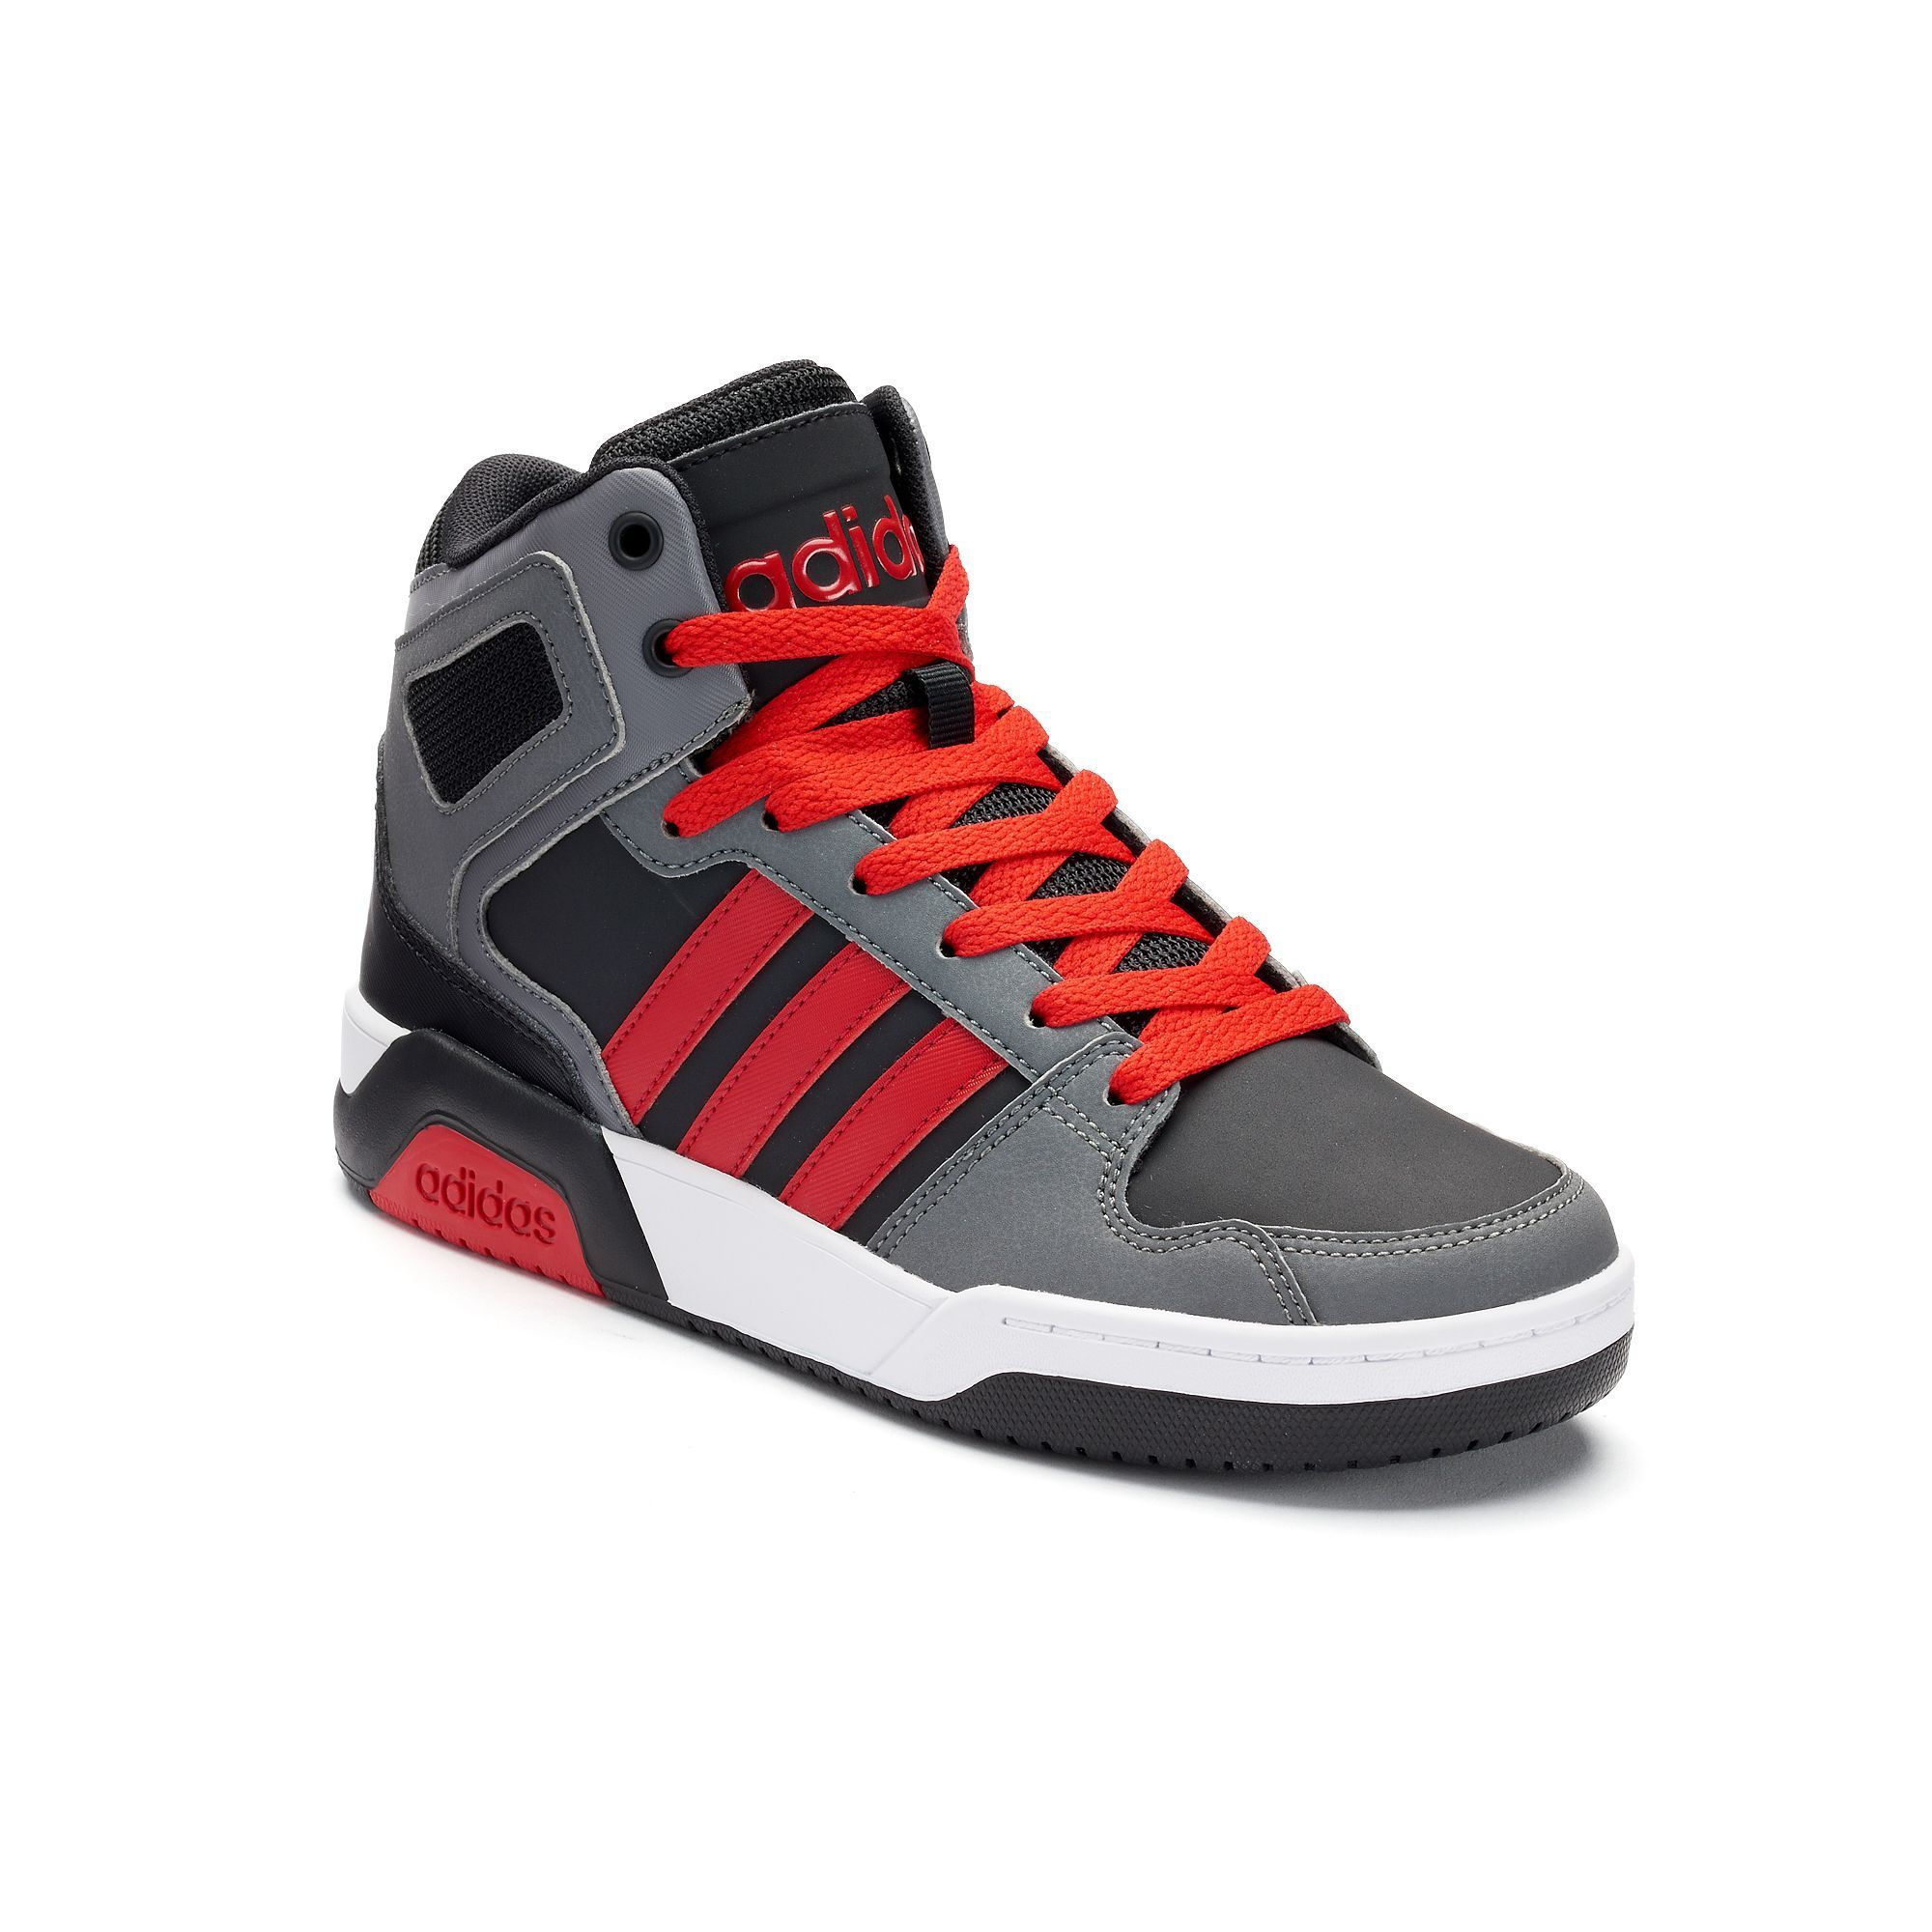 Mens adidas NEO BB9TIS Mid Basketball Shoe FREE Shipping